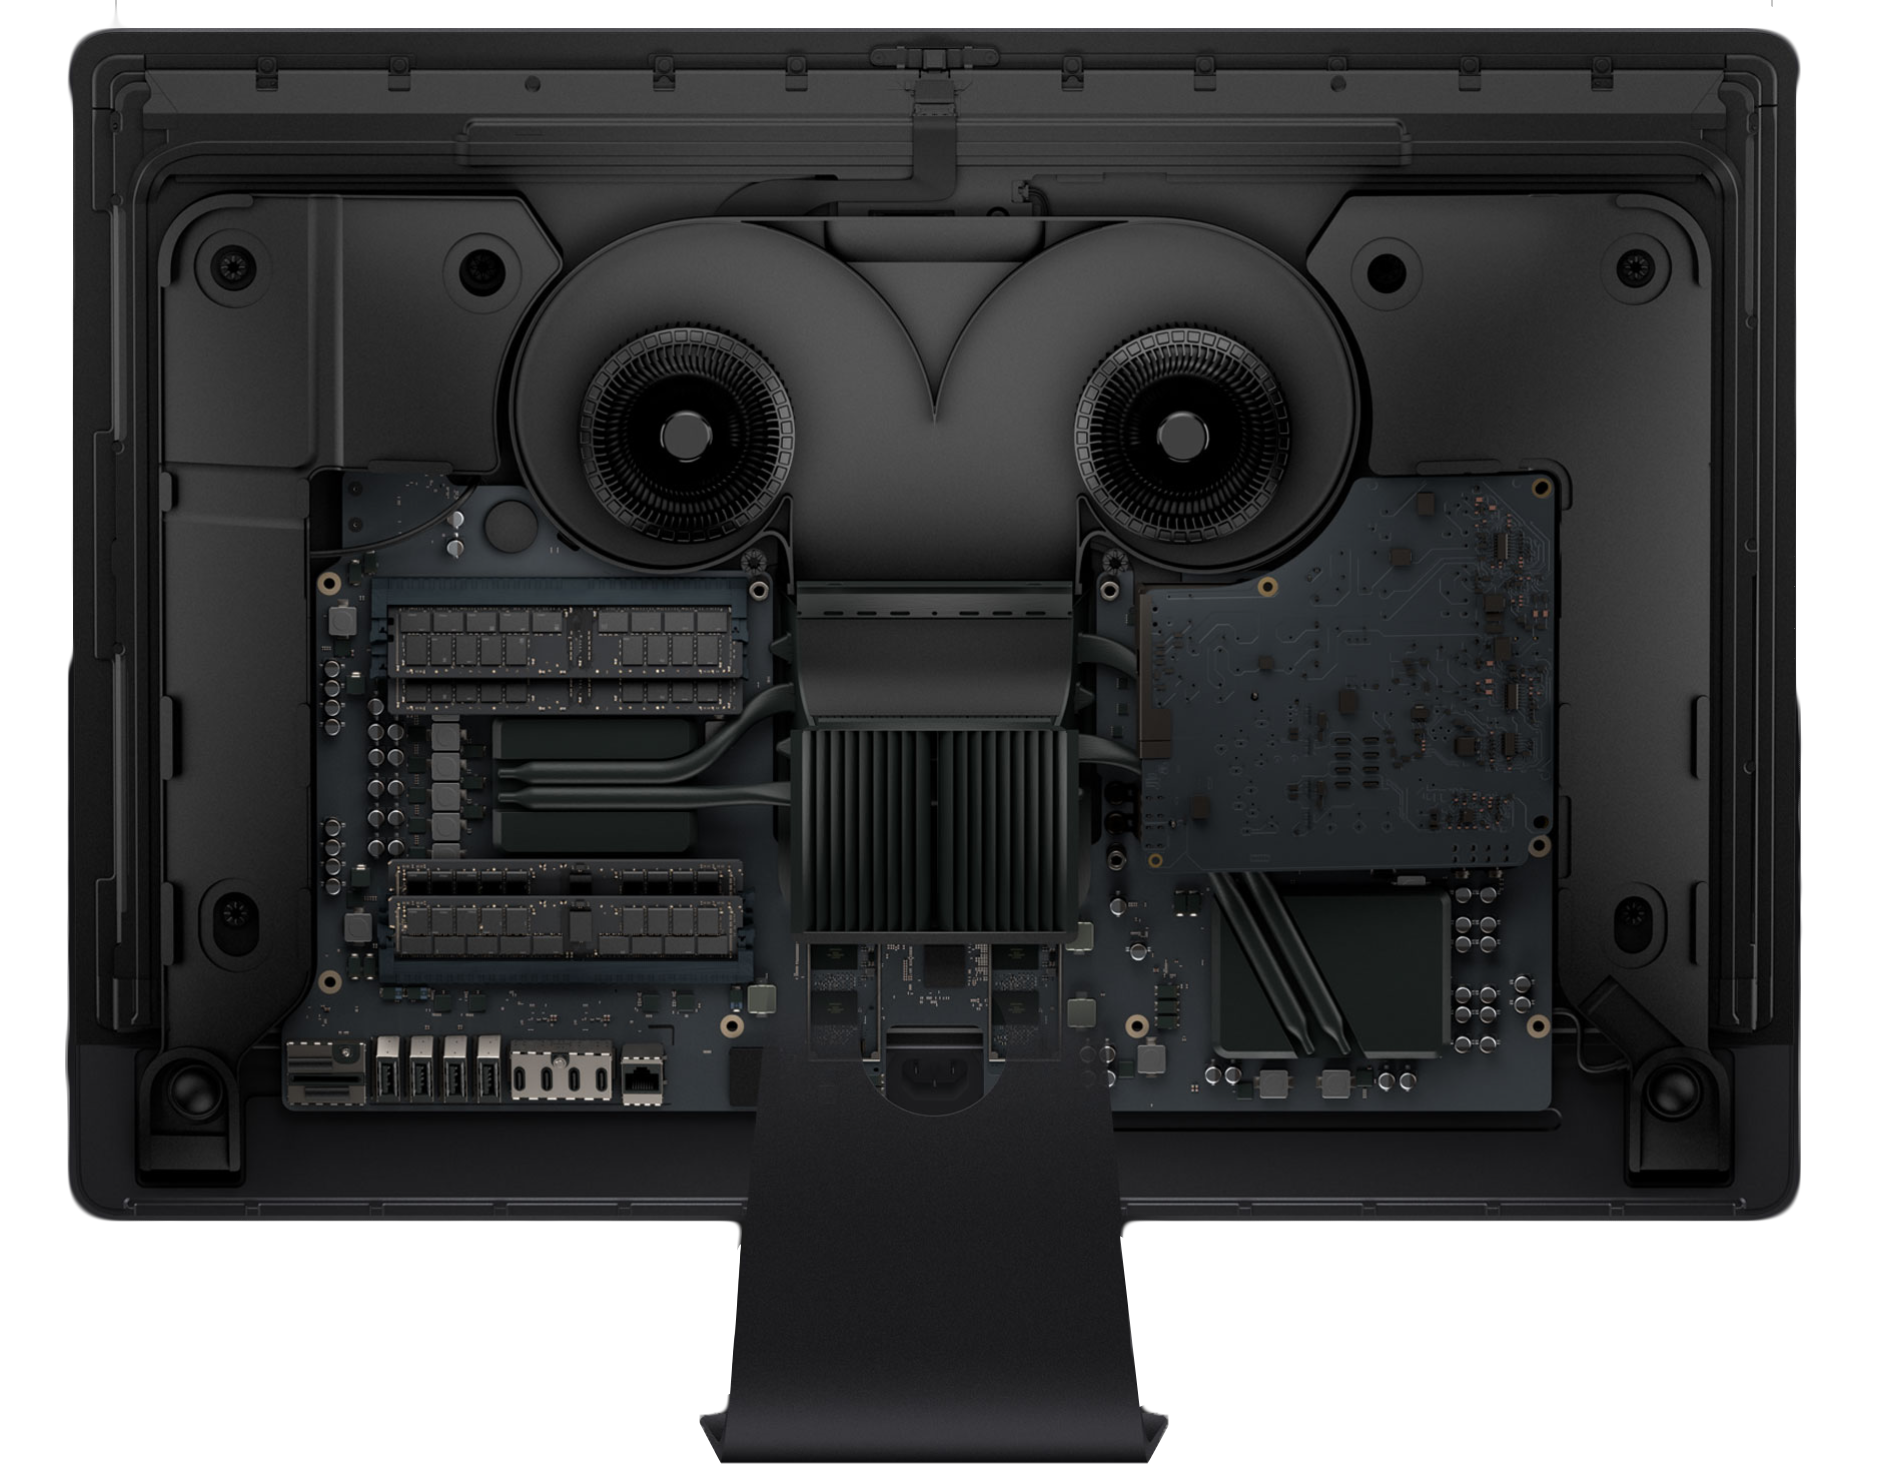 The new iMac Pro–is it worth it? Probably. 7